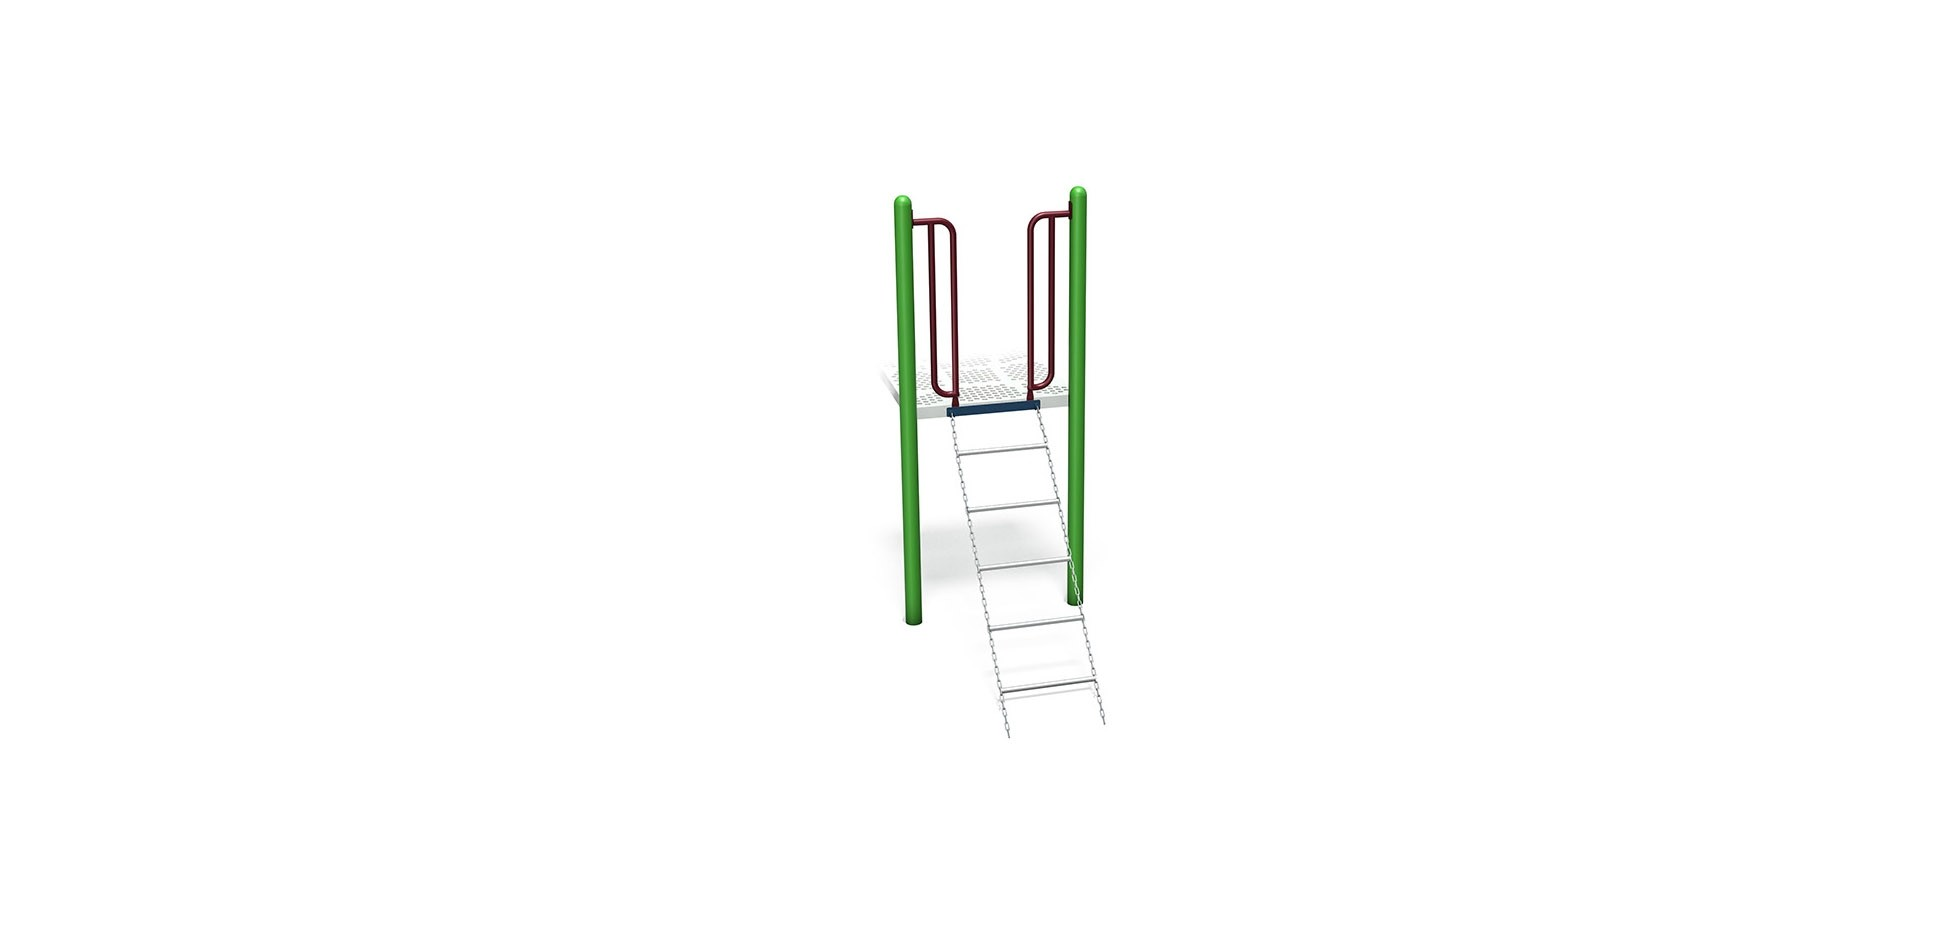 Stainless Steel Chain Net Climber